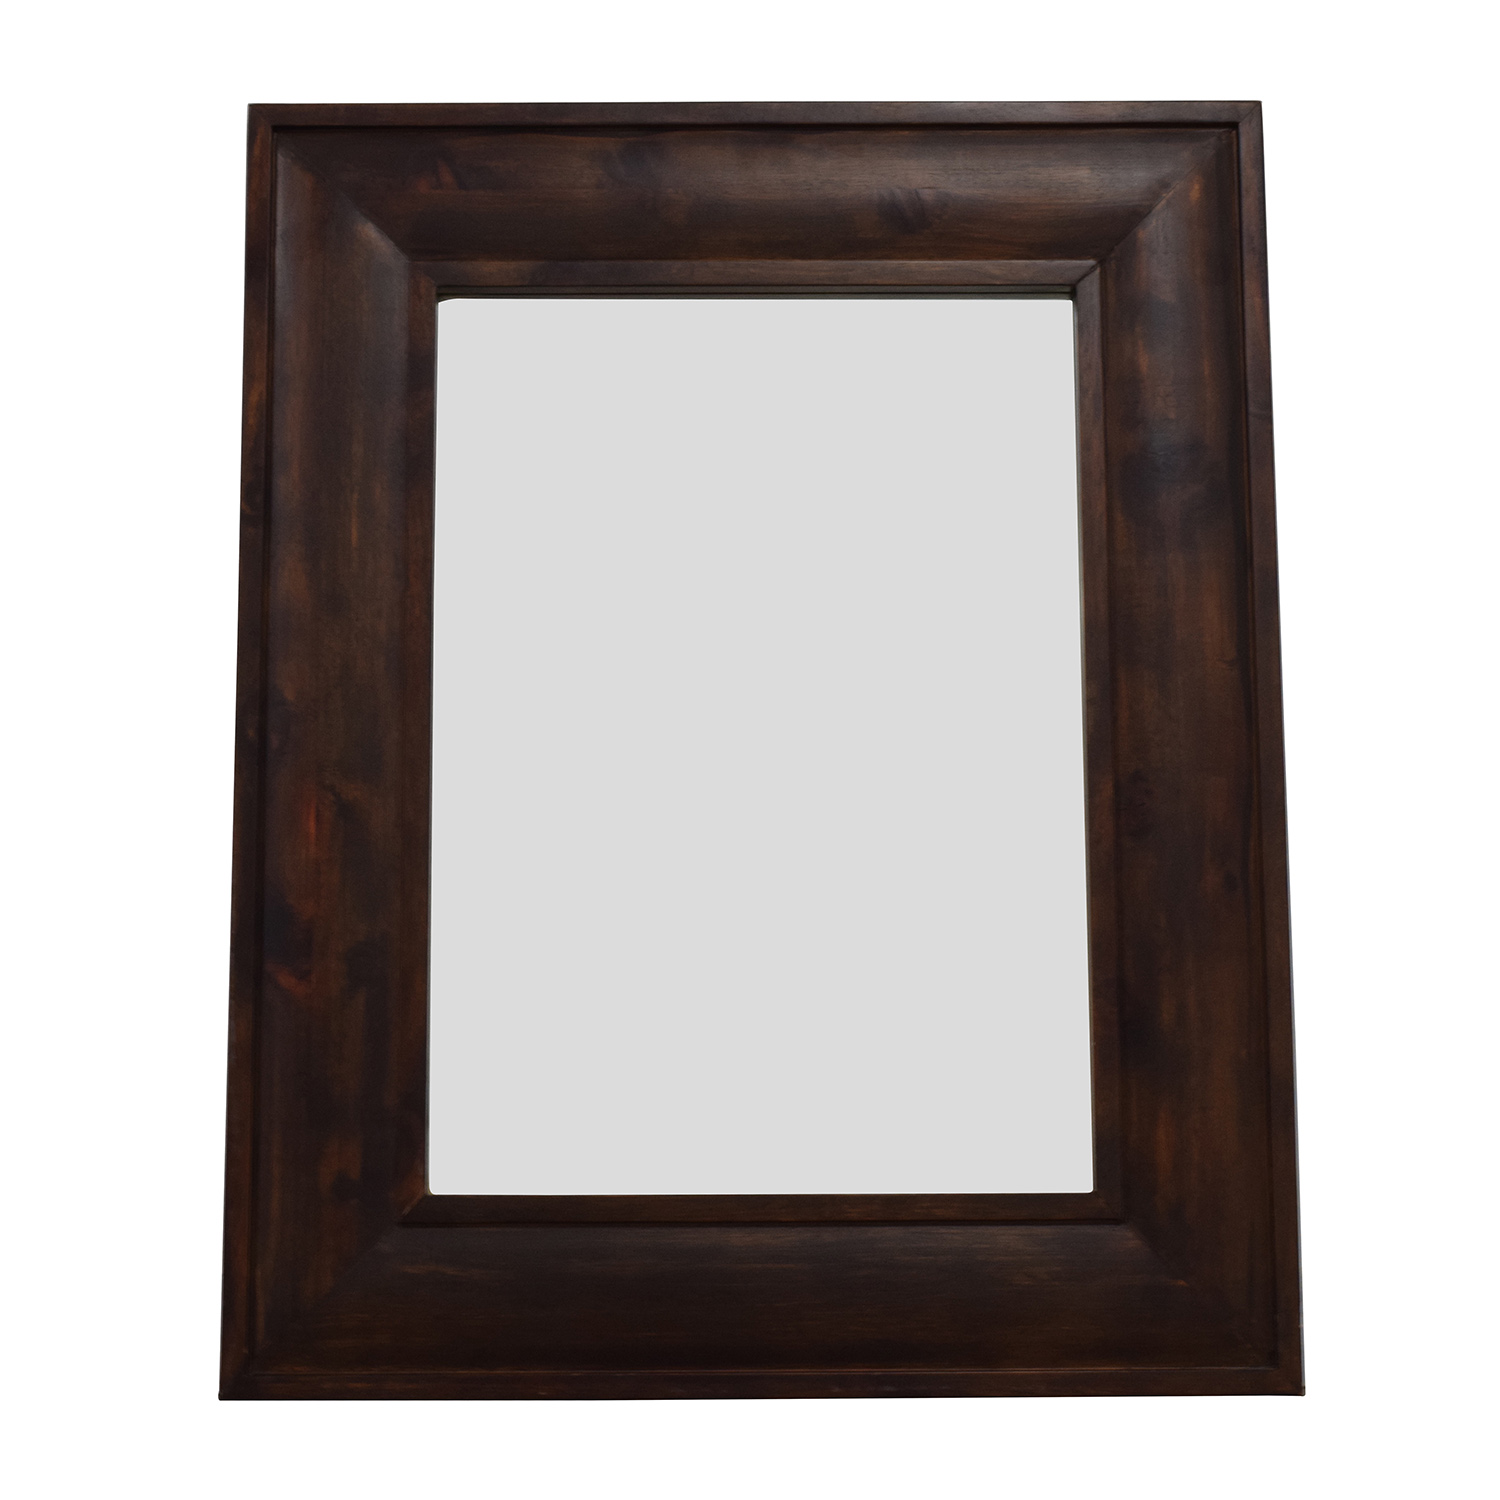 buy West Elm West Elm Wood Framed Mirror online